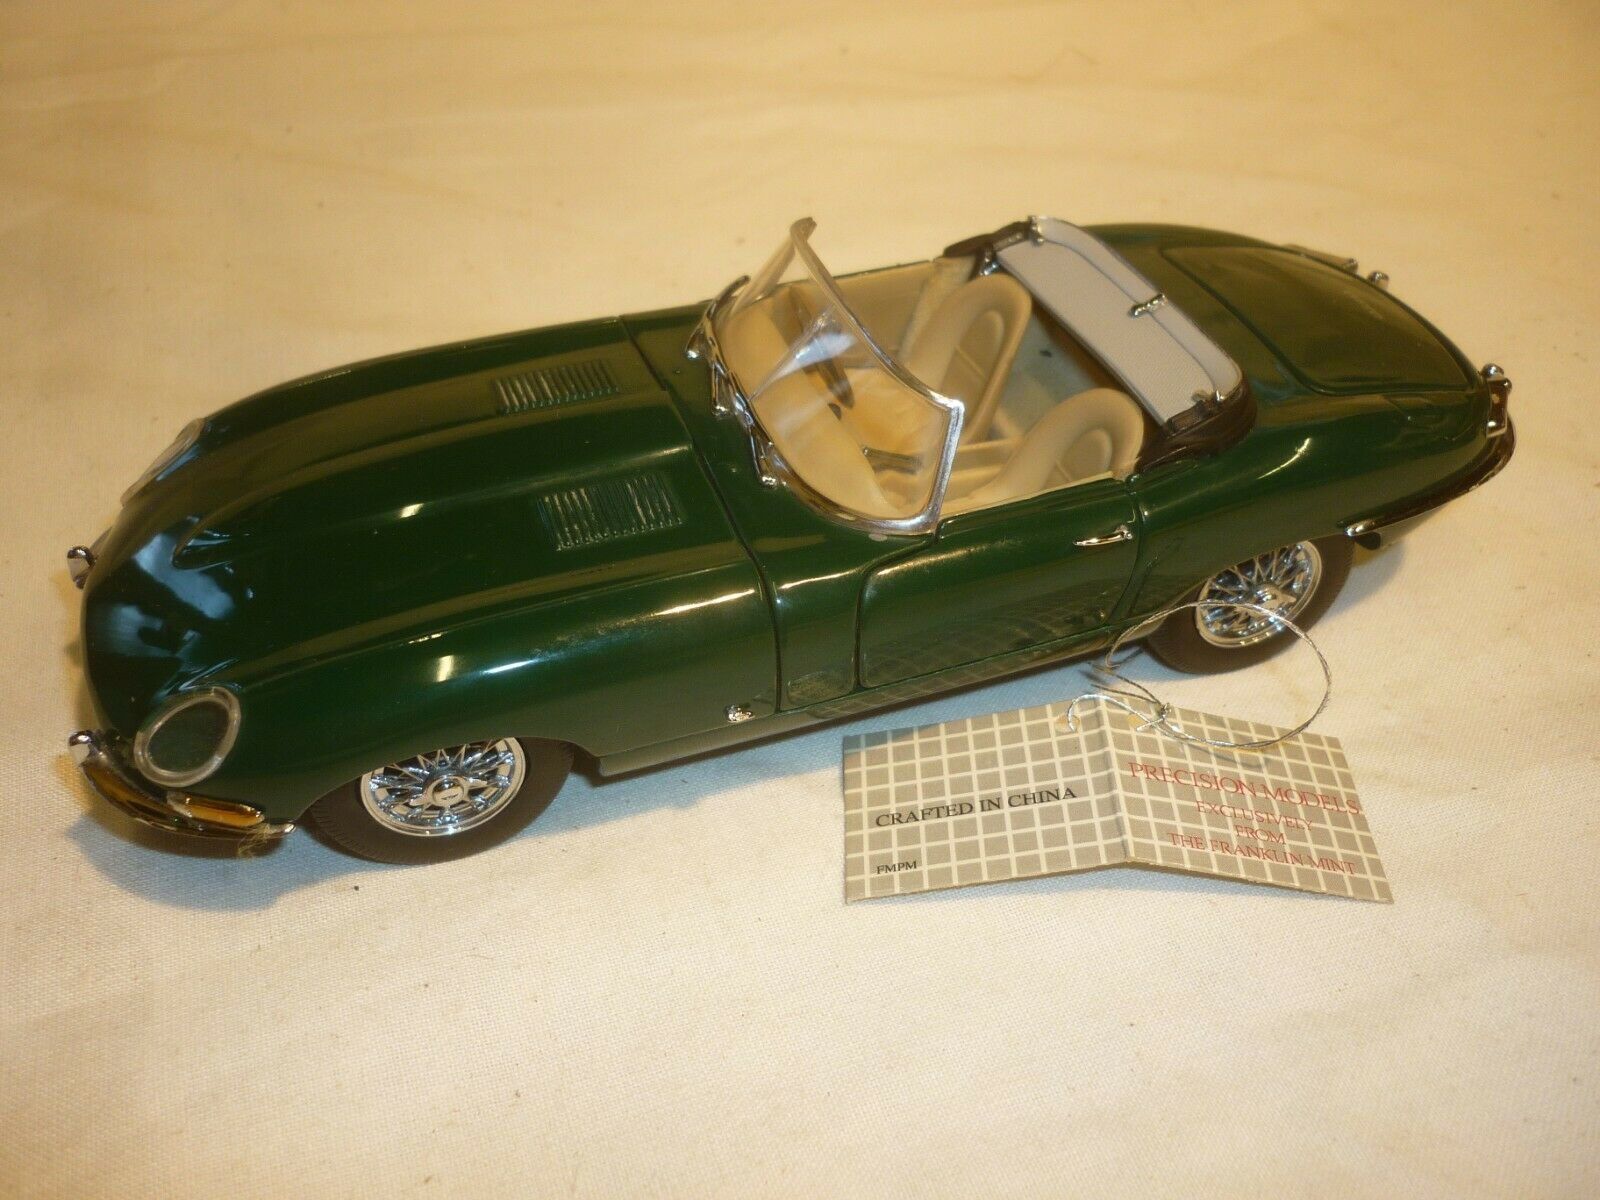 A Franklin mint of a scale model of a 1952 Jaguar xk 120 Roadster, no box